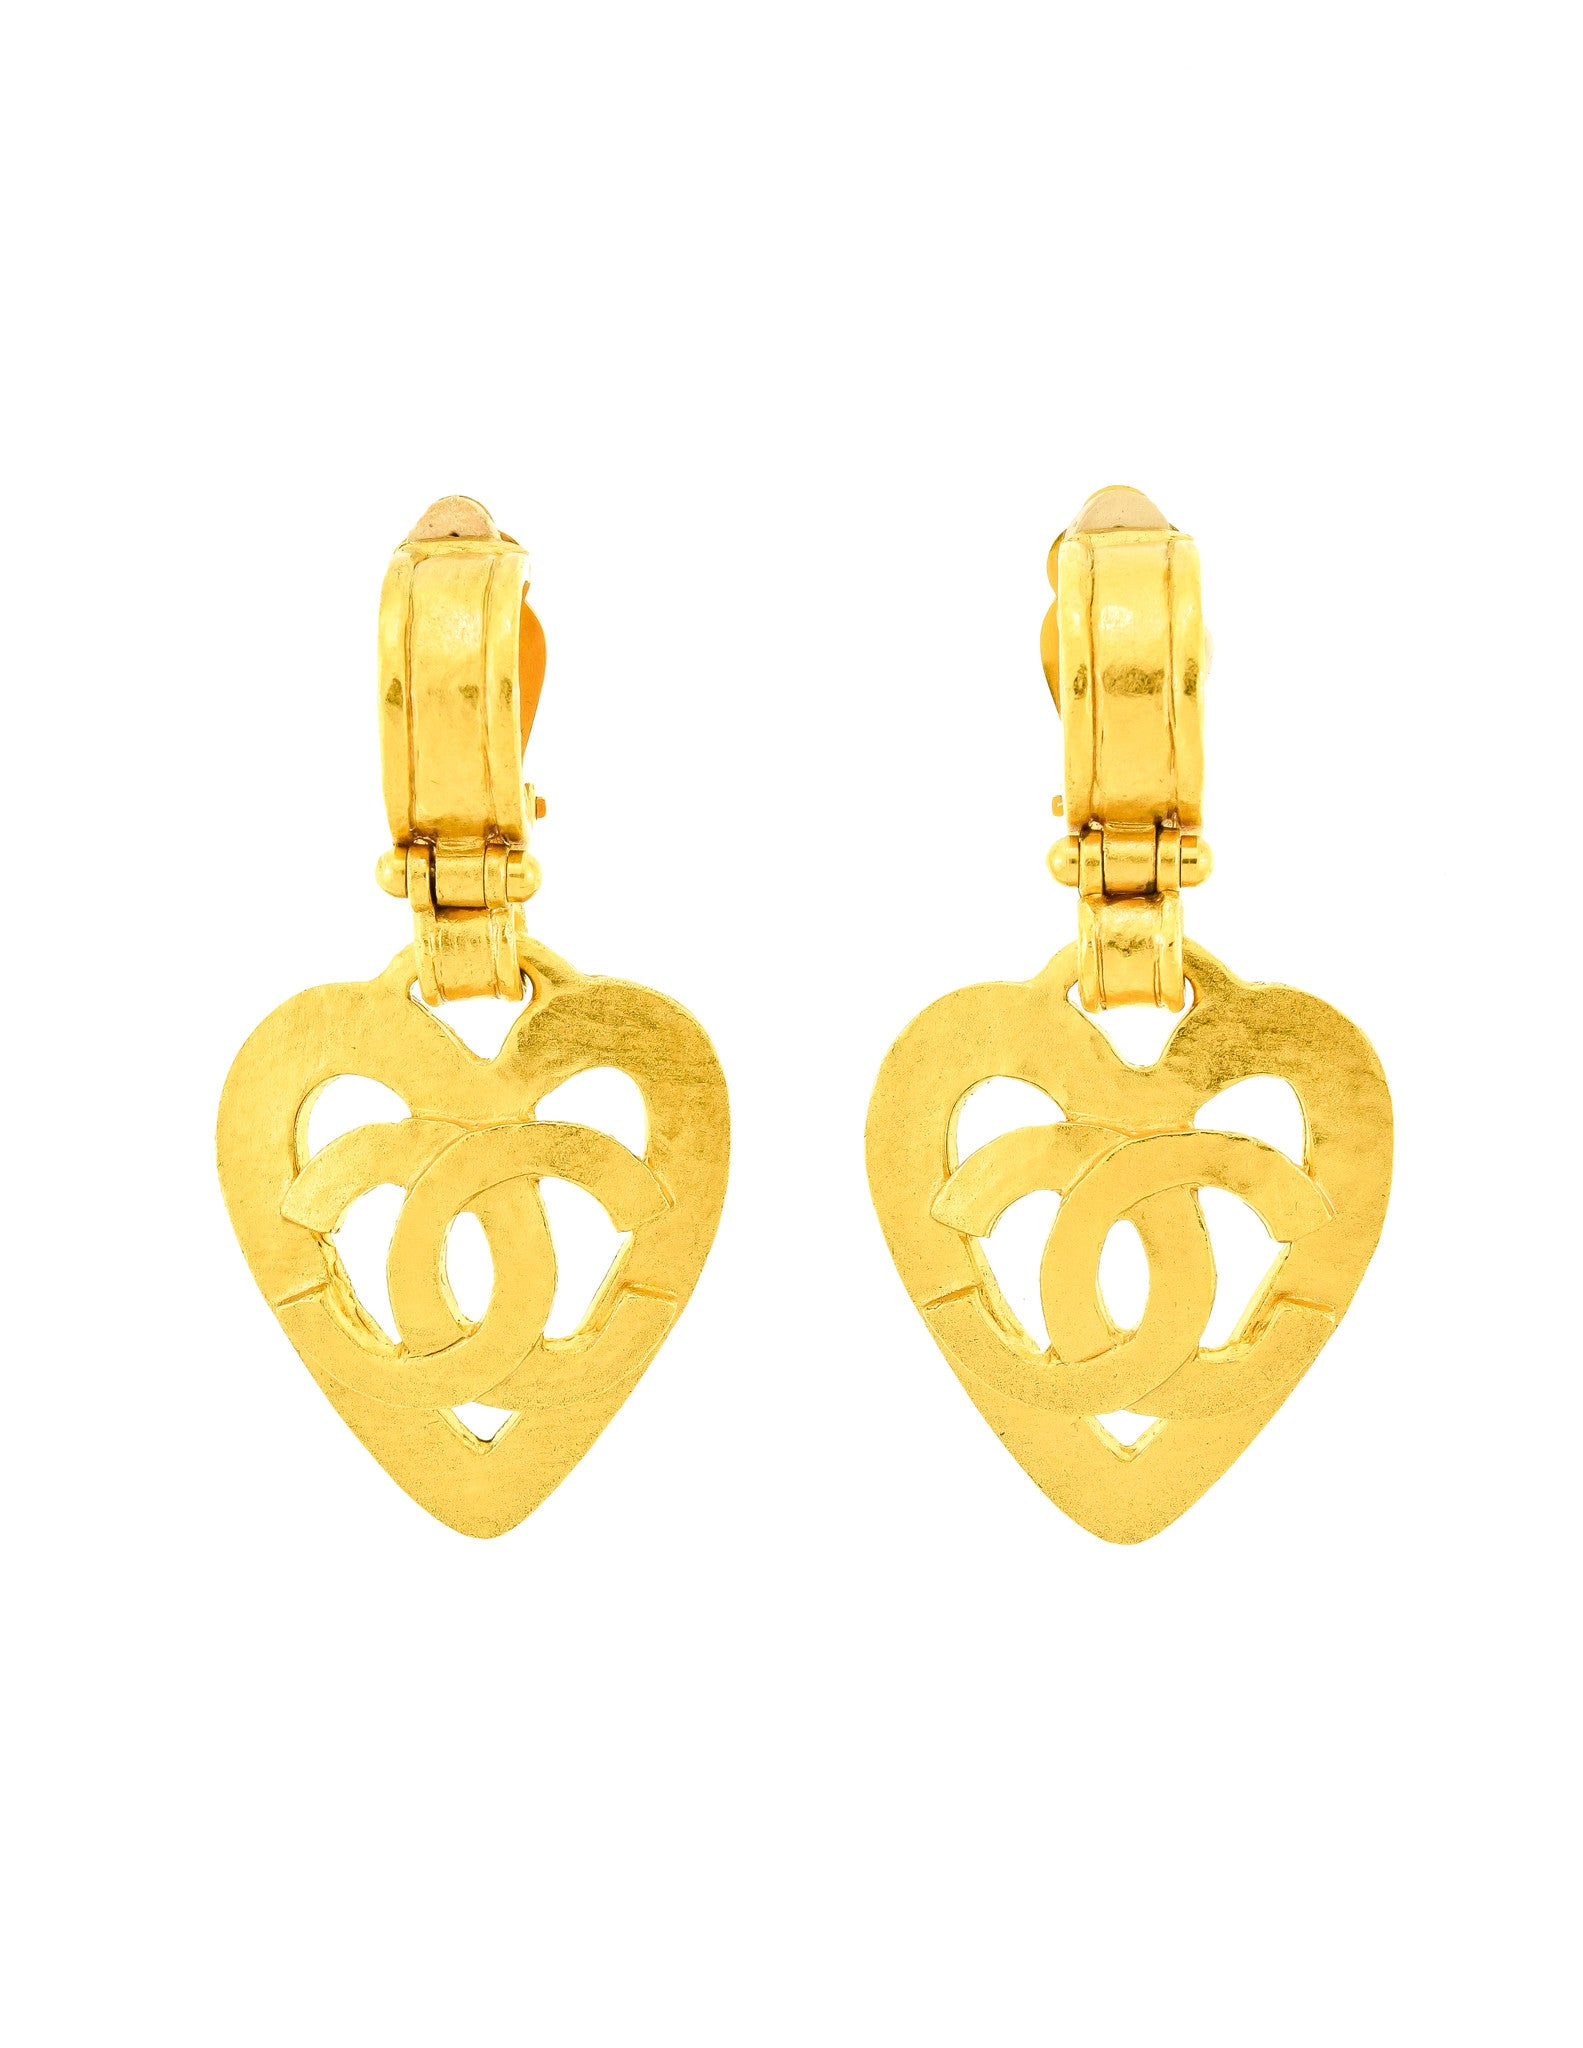 Chanel Vintage Brushed Gold CC Logo Heart Earrings - Amarcord Vintage Fashion  - 1